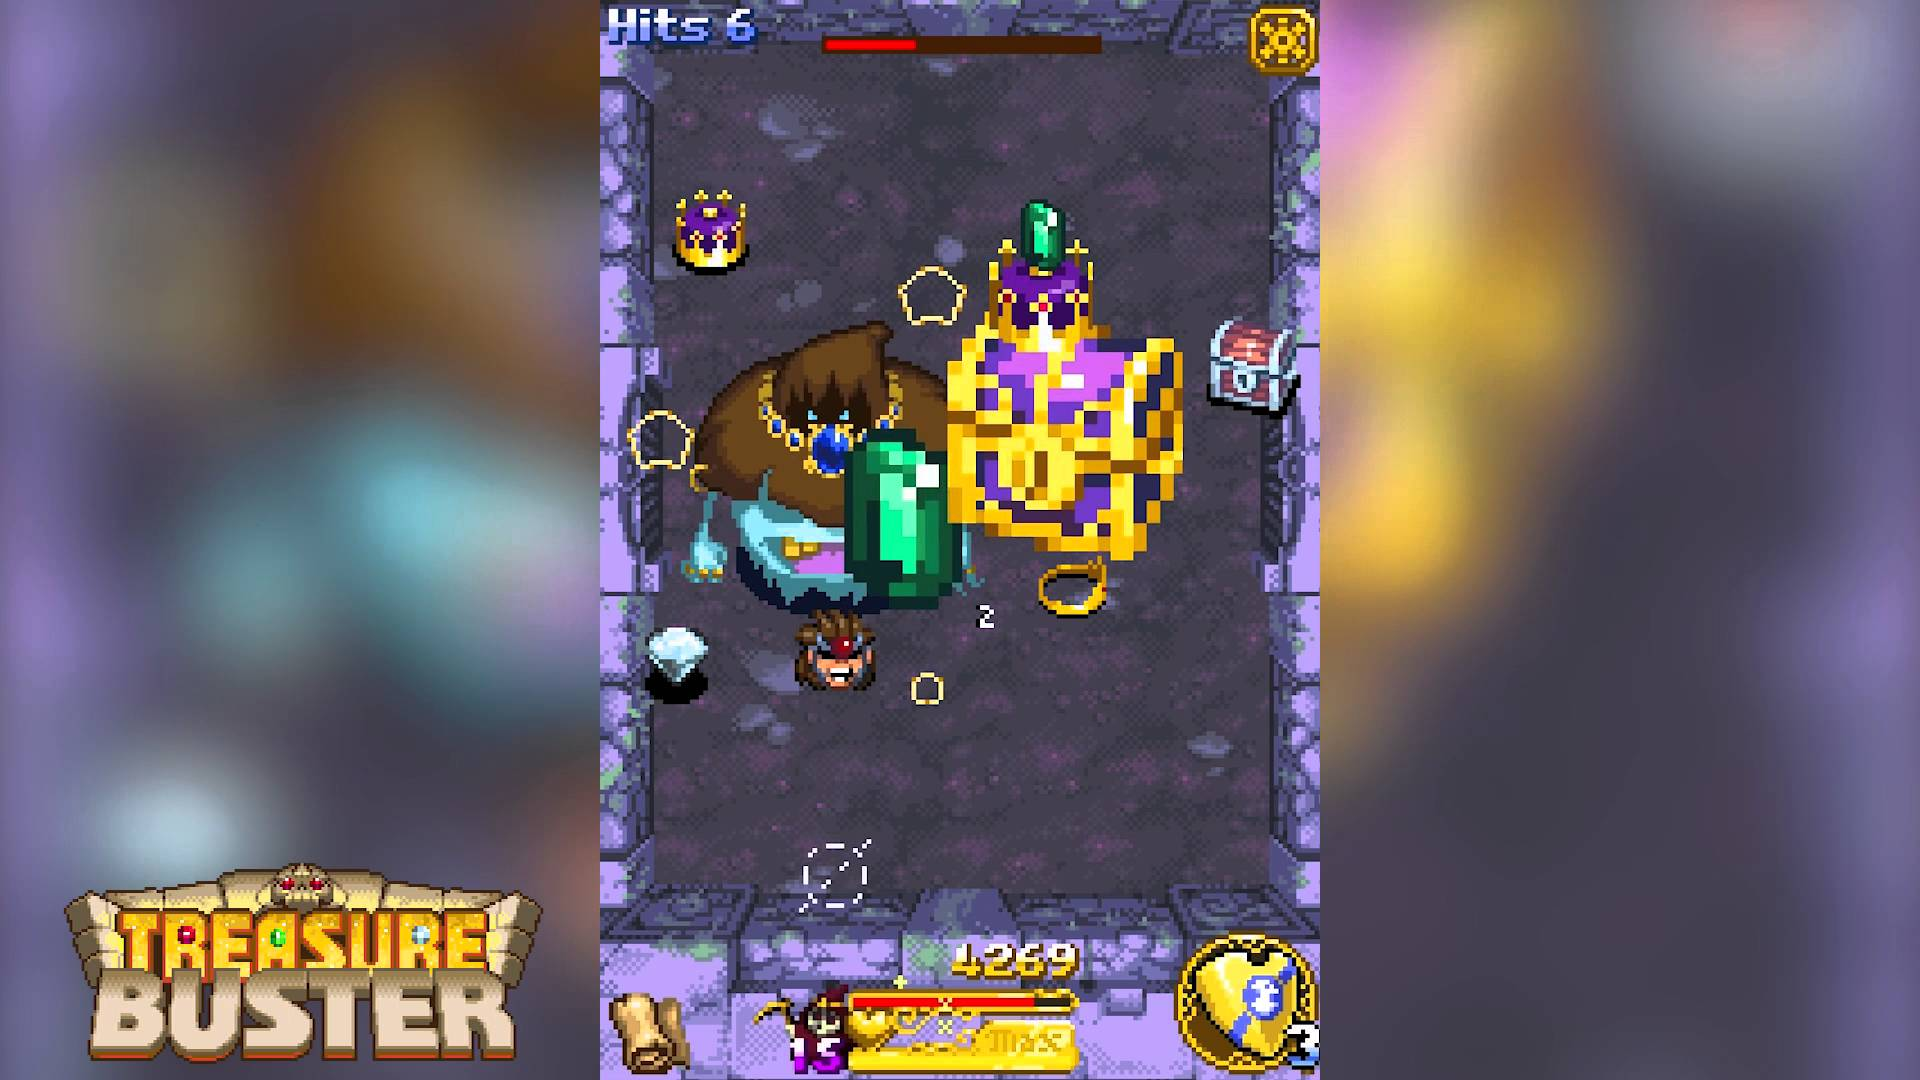 treasure_buster_gameplay_noticiasapple-es